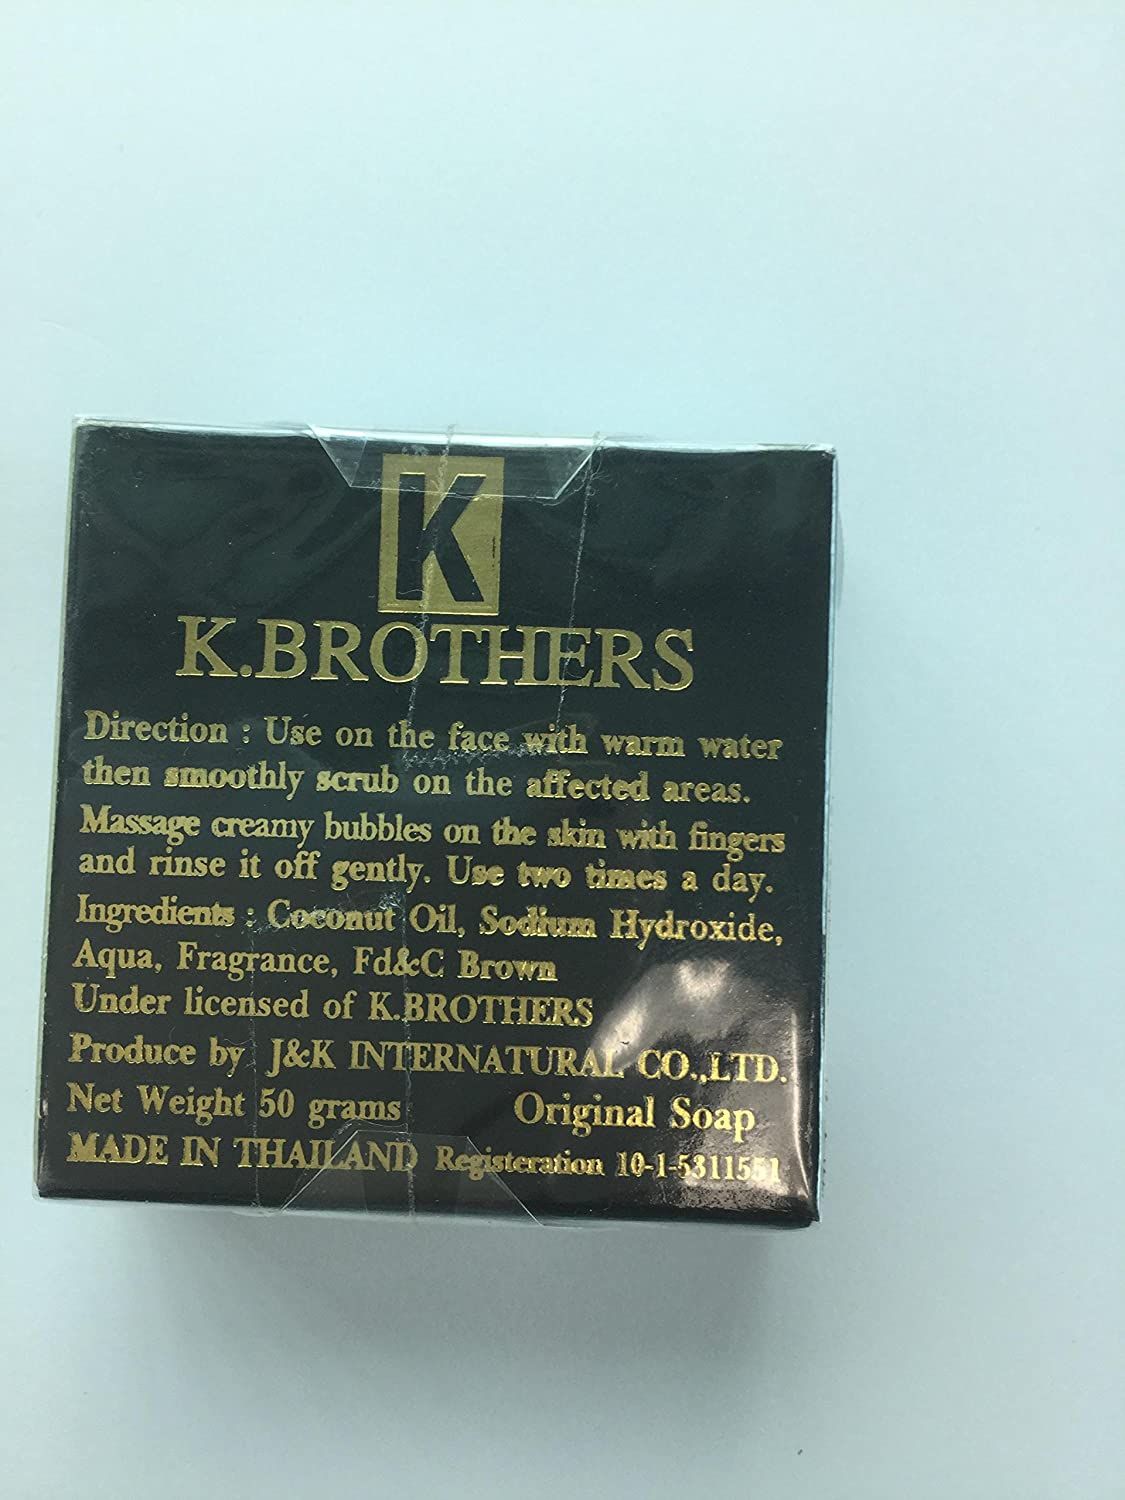 Kbrothers Soap Whitening Beauty Care Face Out For K Brothers Black Spot Mask On Usa 3pcs 1 Pcs50 G Everything Else